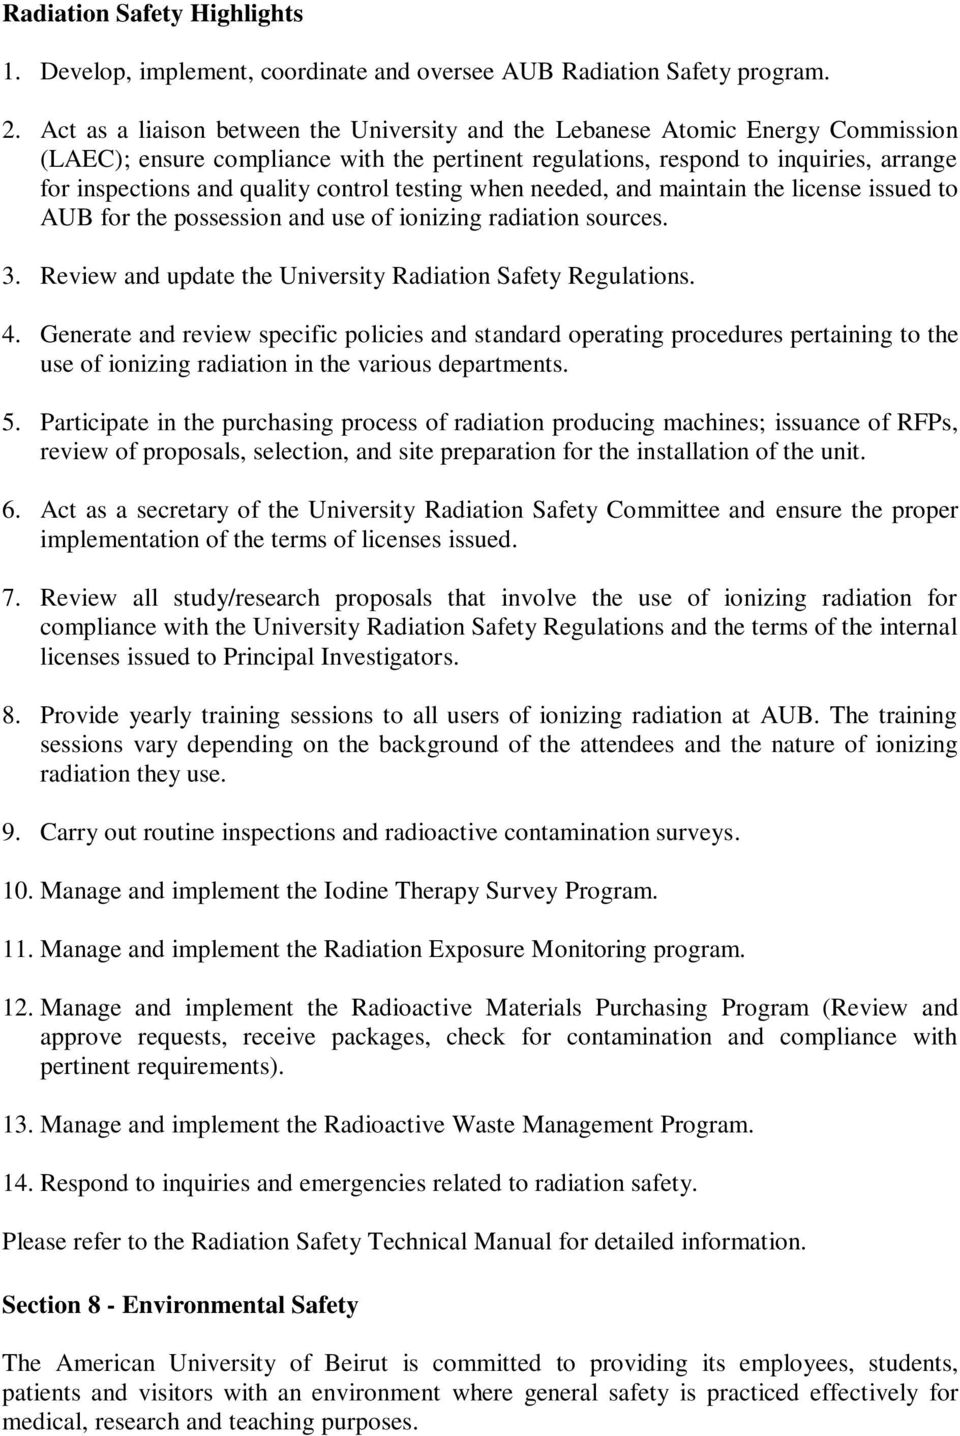 control testing when needed, and maintain the license issued to AUB for the possession and use of ionizing radiation sources. 3. Review and update the University Radiation Safety Regulations. 4.